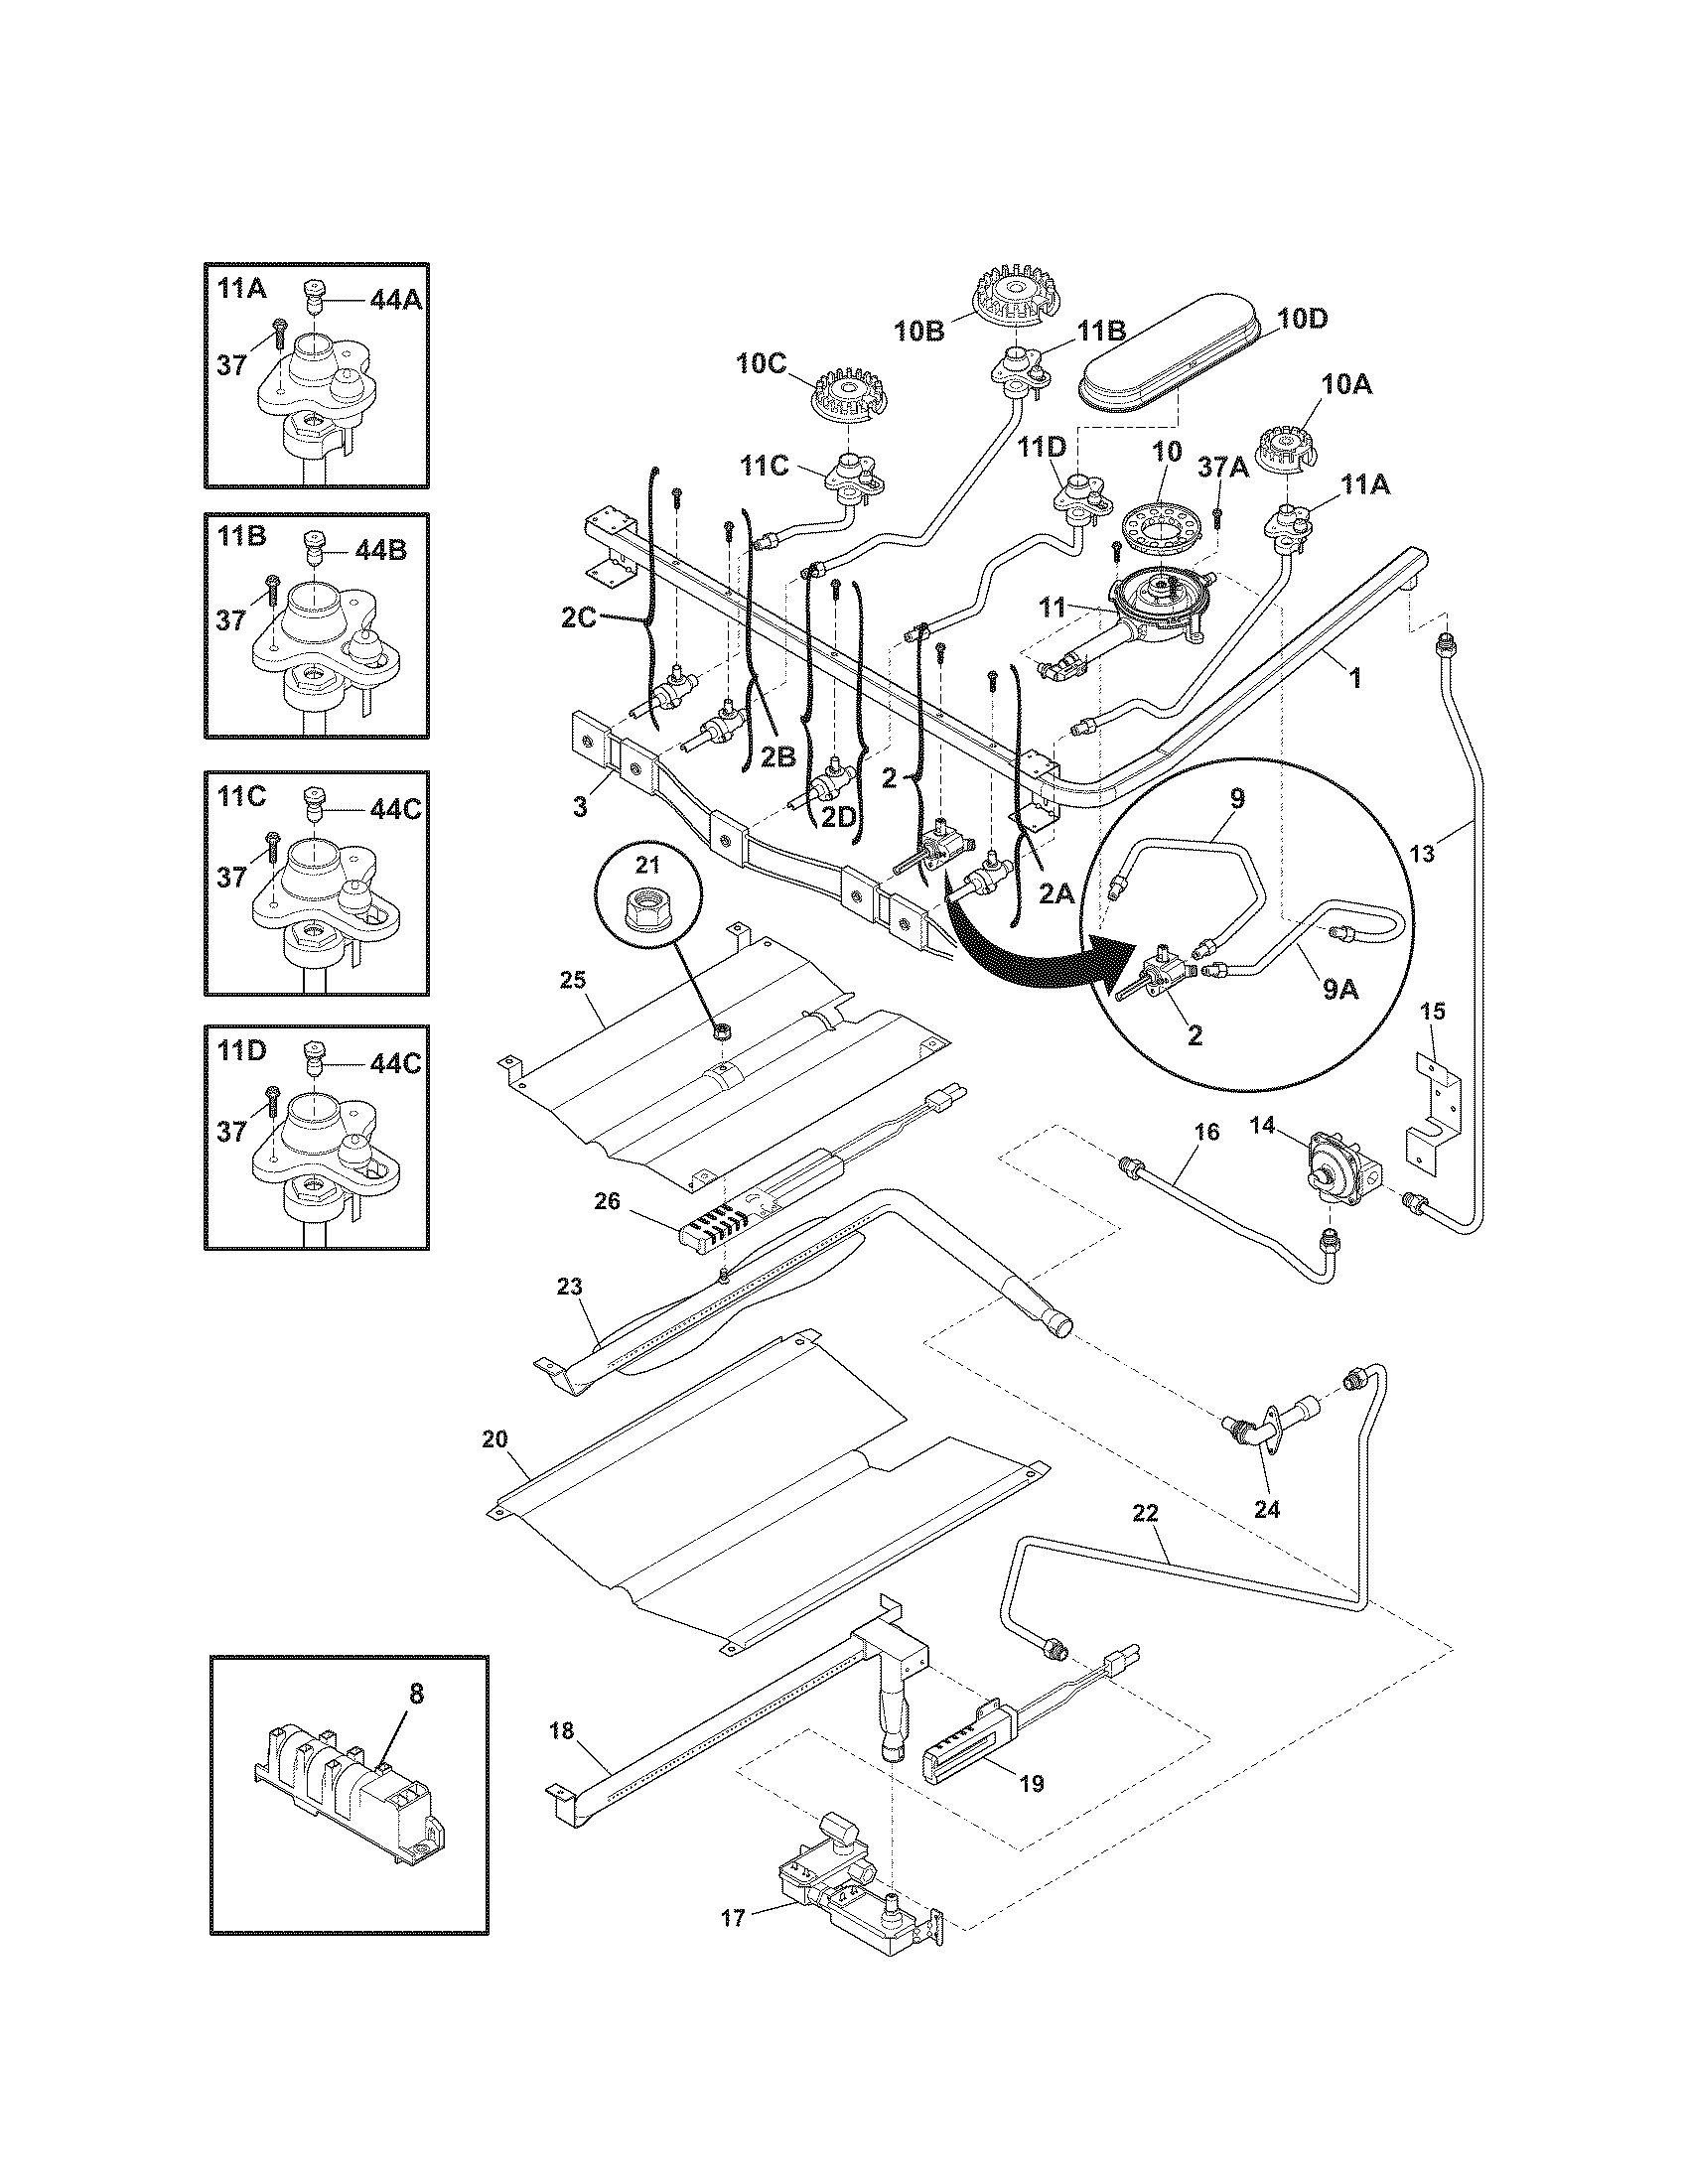 BURNER Diagram & Parts List for Model 79077543803 Kenmore